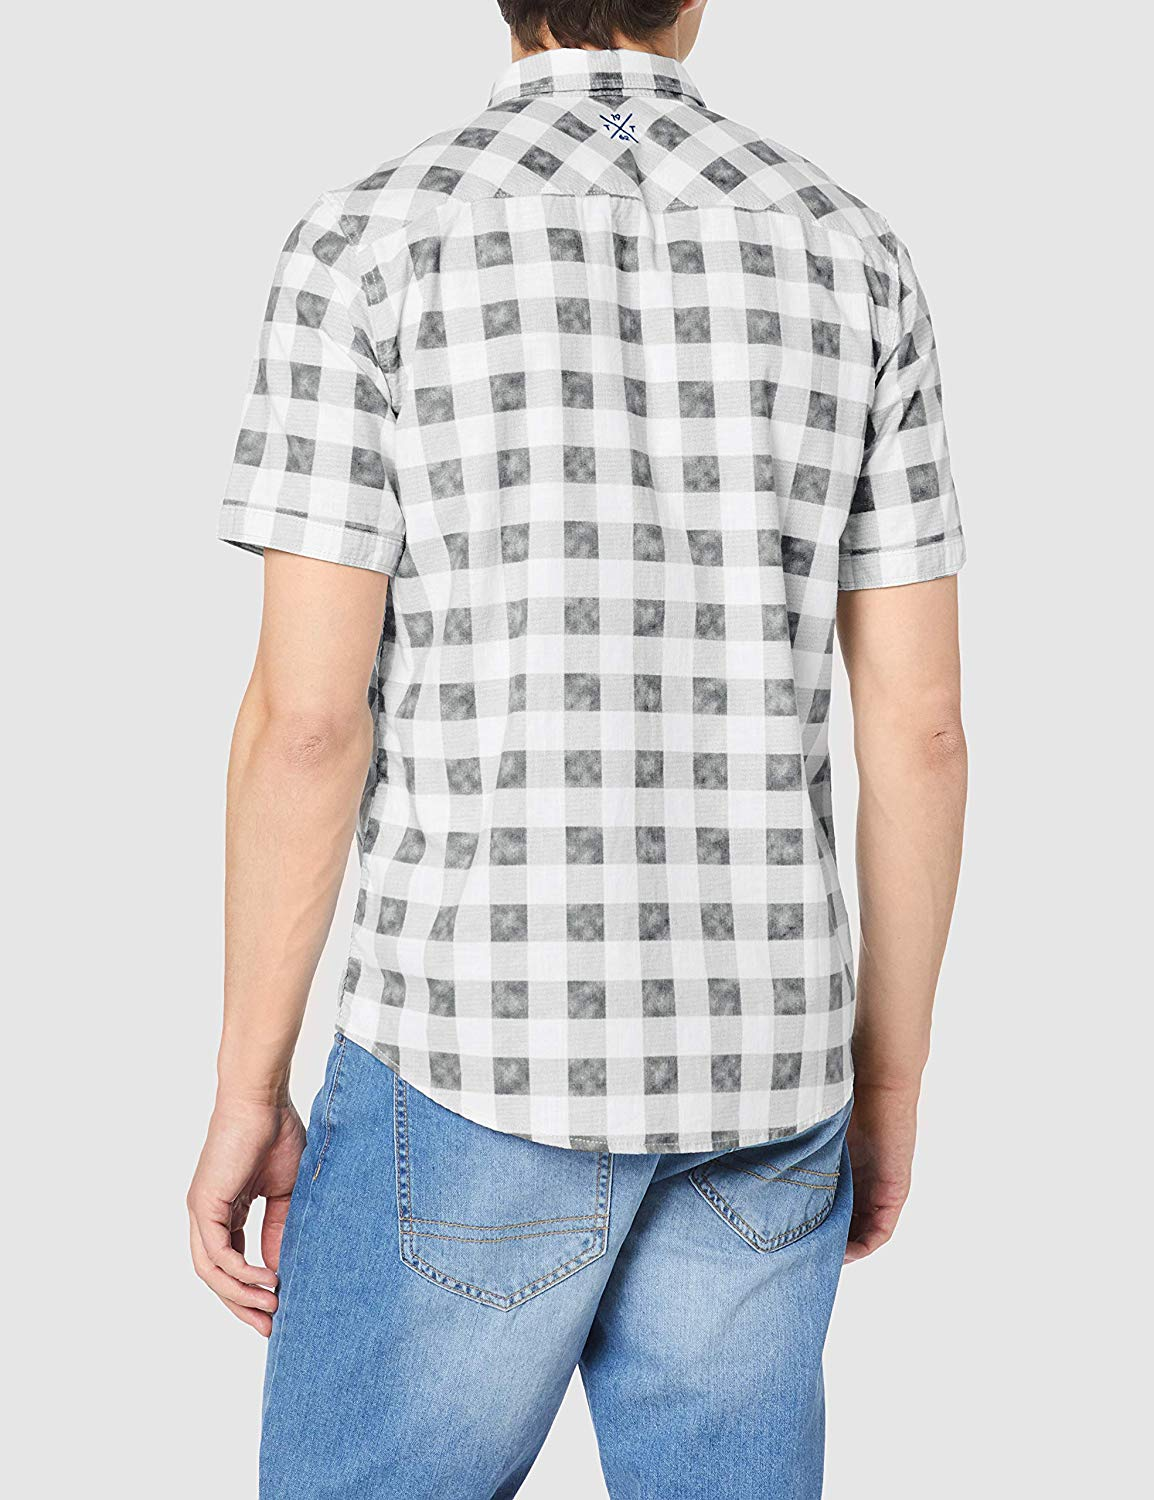 Summer New Style Customized Regular Fit 100% Cotton Casual Men's Short Sleeve Plaid Shirt